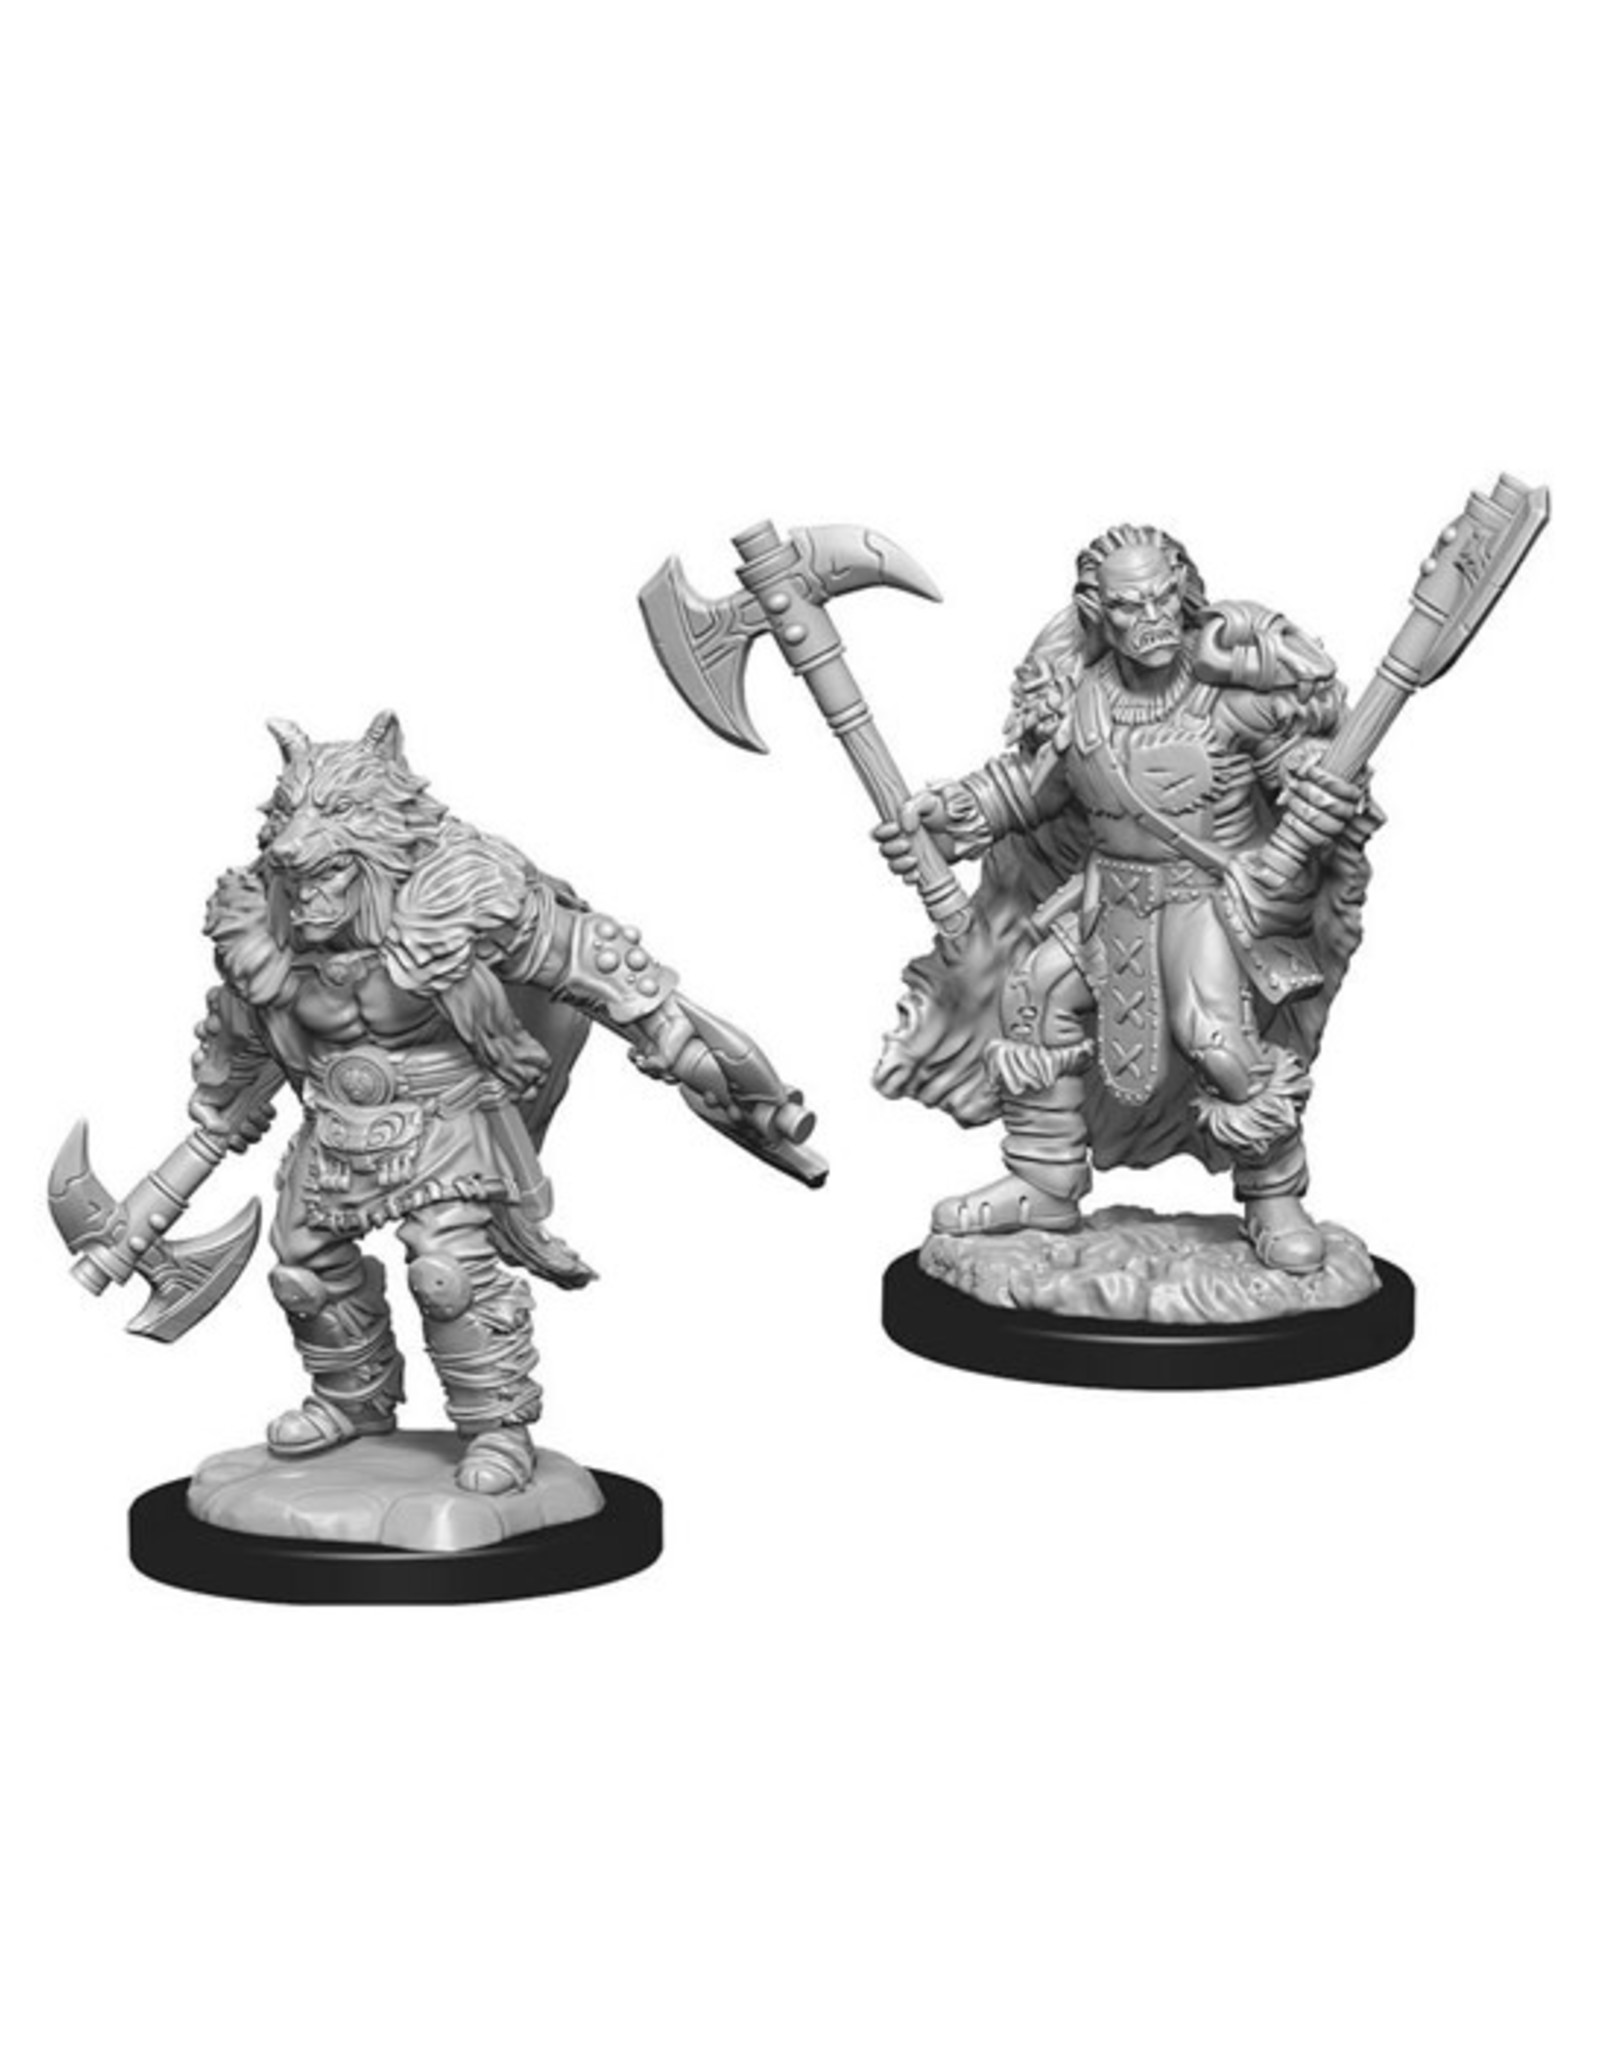 Dungeons & Dragons Dungeons & Dragons: Nolzur's - Half-Orc Male Barbarian